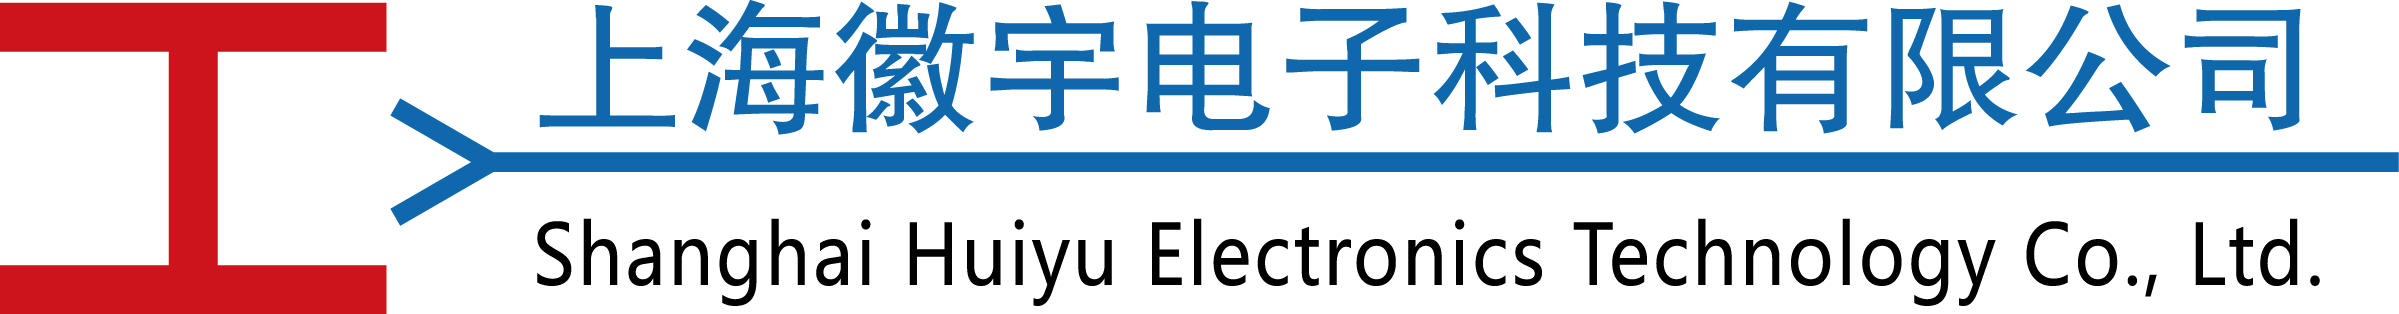 Shanghai Huiyu Electronics Technology Co., Ltd